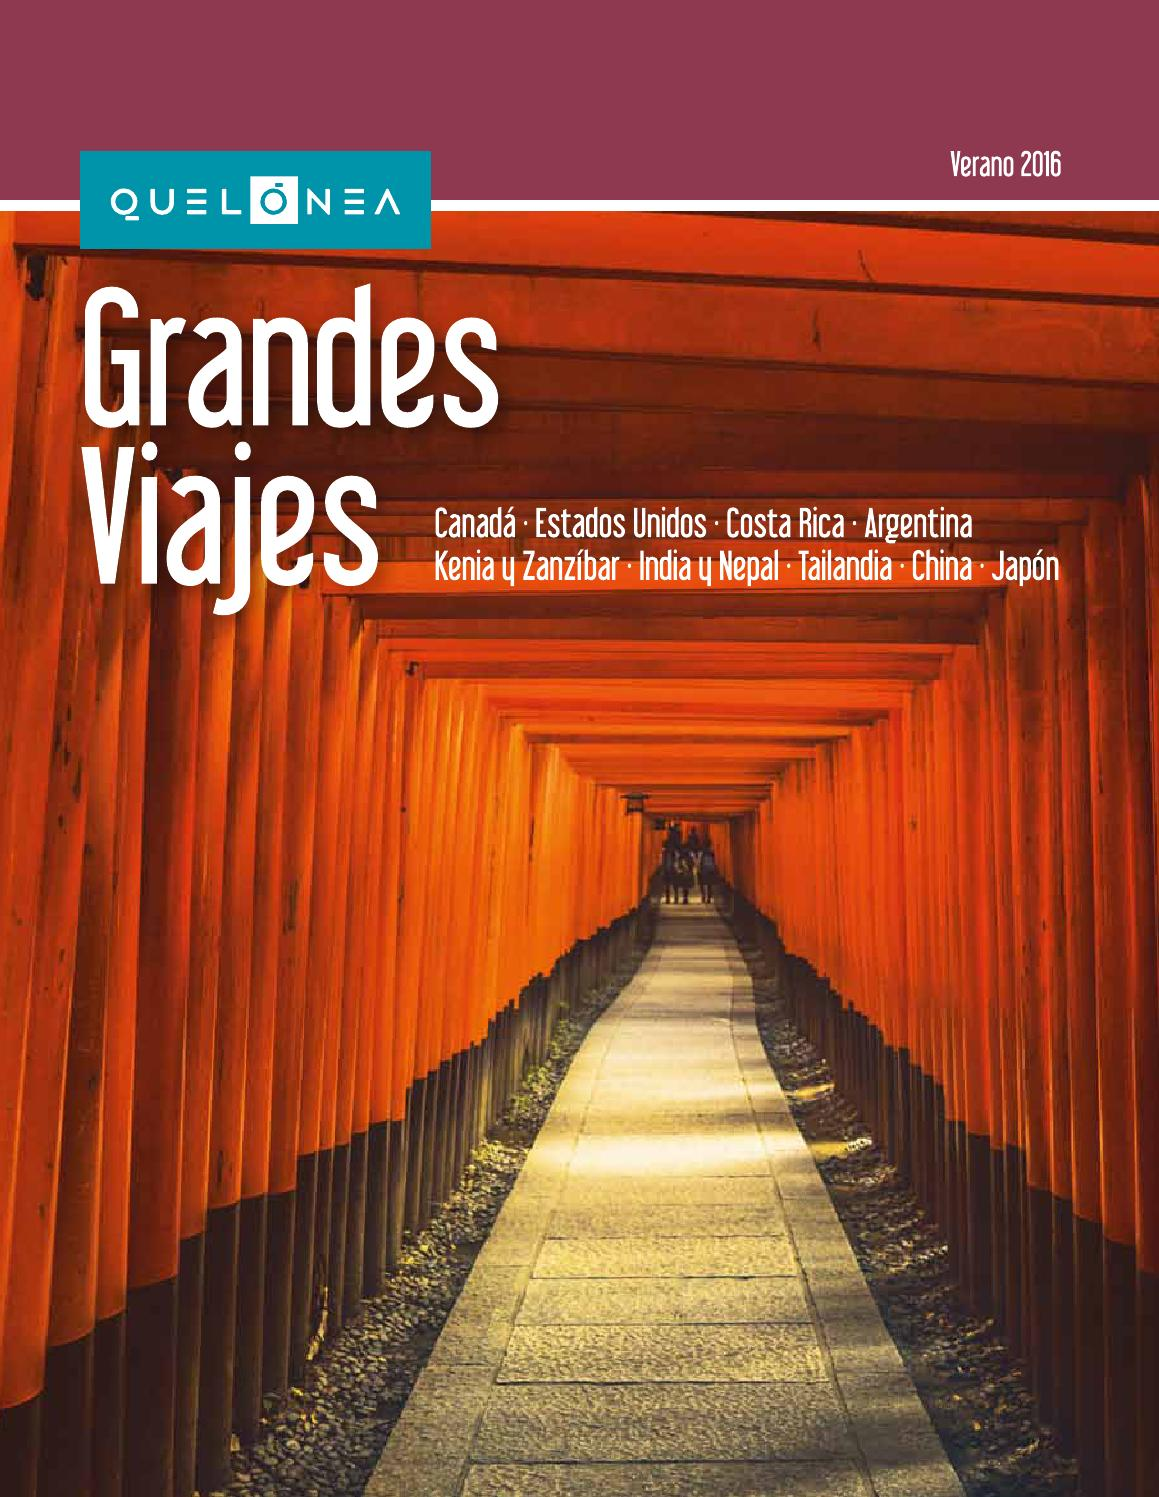 Q grandes viajes v16 original by Travelsens - issuu